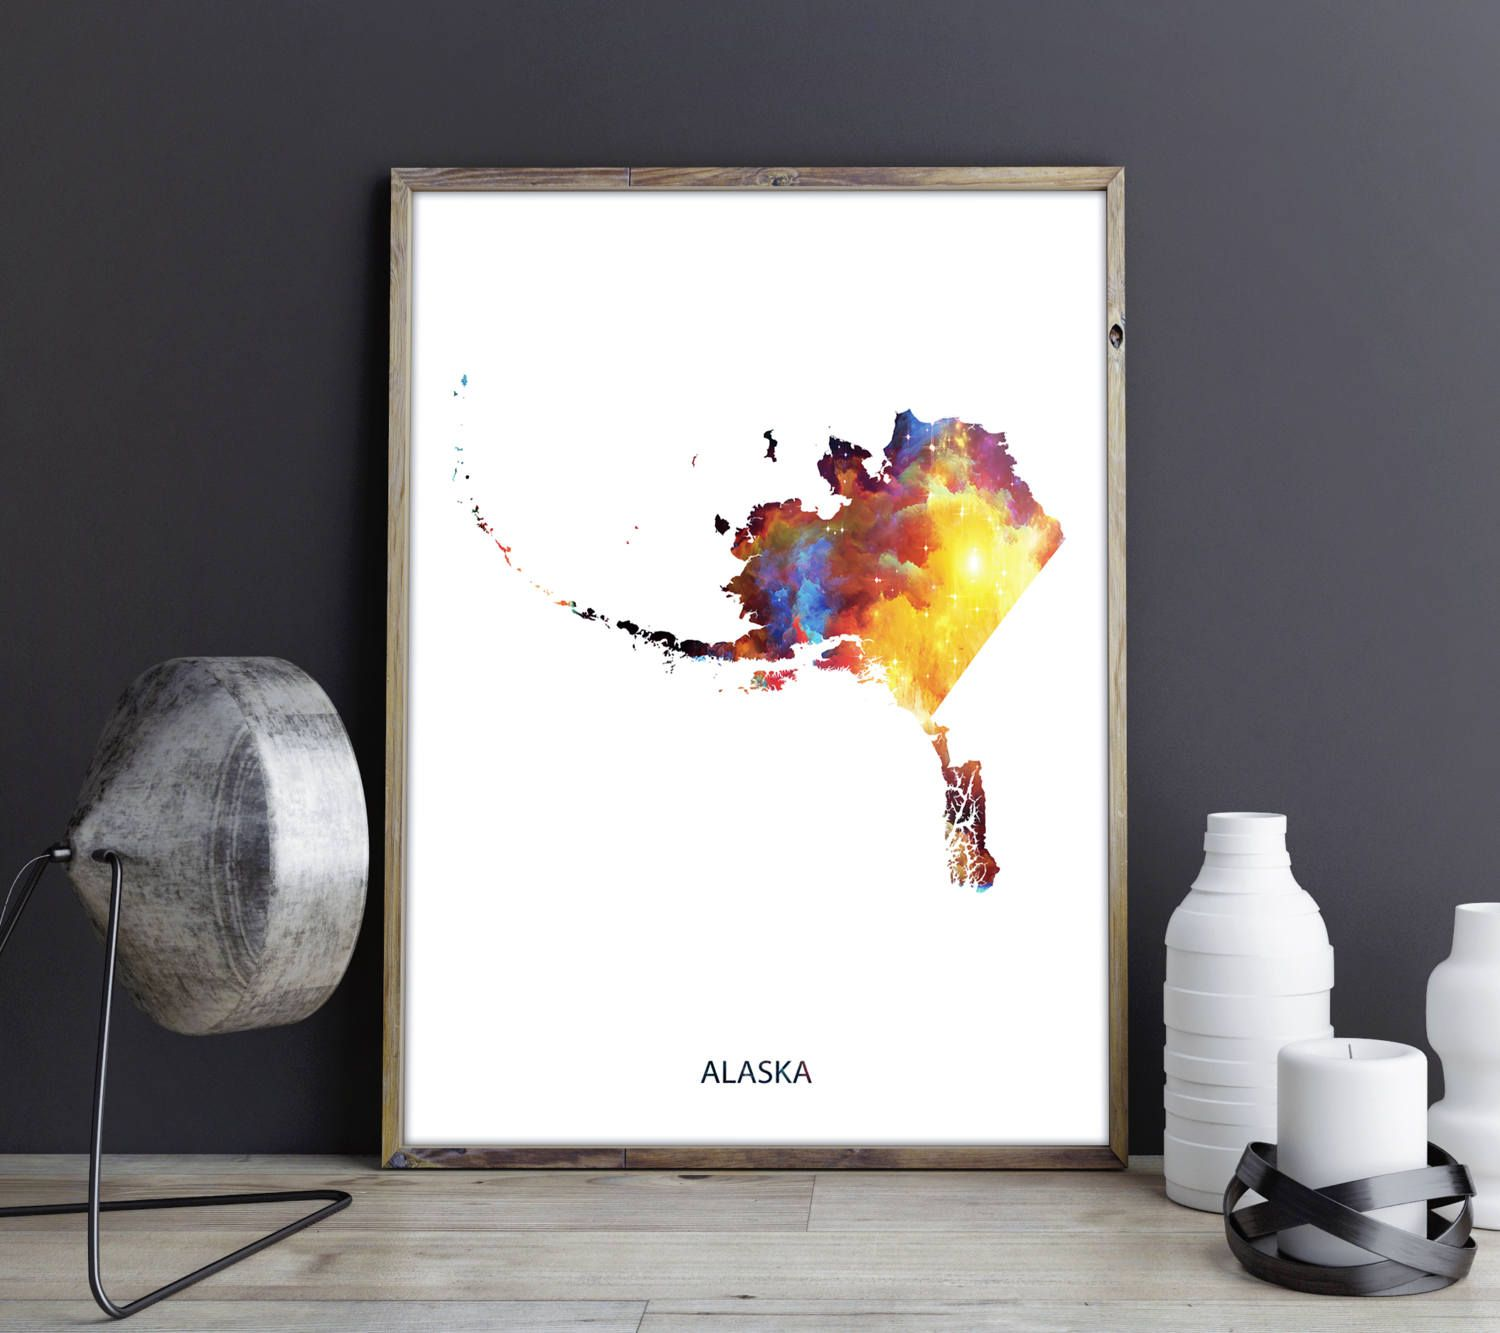 Alaska Art Alaska Wall Art Alaska Decor Alaska Photo Alaska Print Alaska Poster Alaska State Map Chicago Wall Art Chicago Canvas Art Watercolor Map